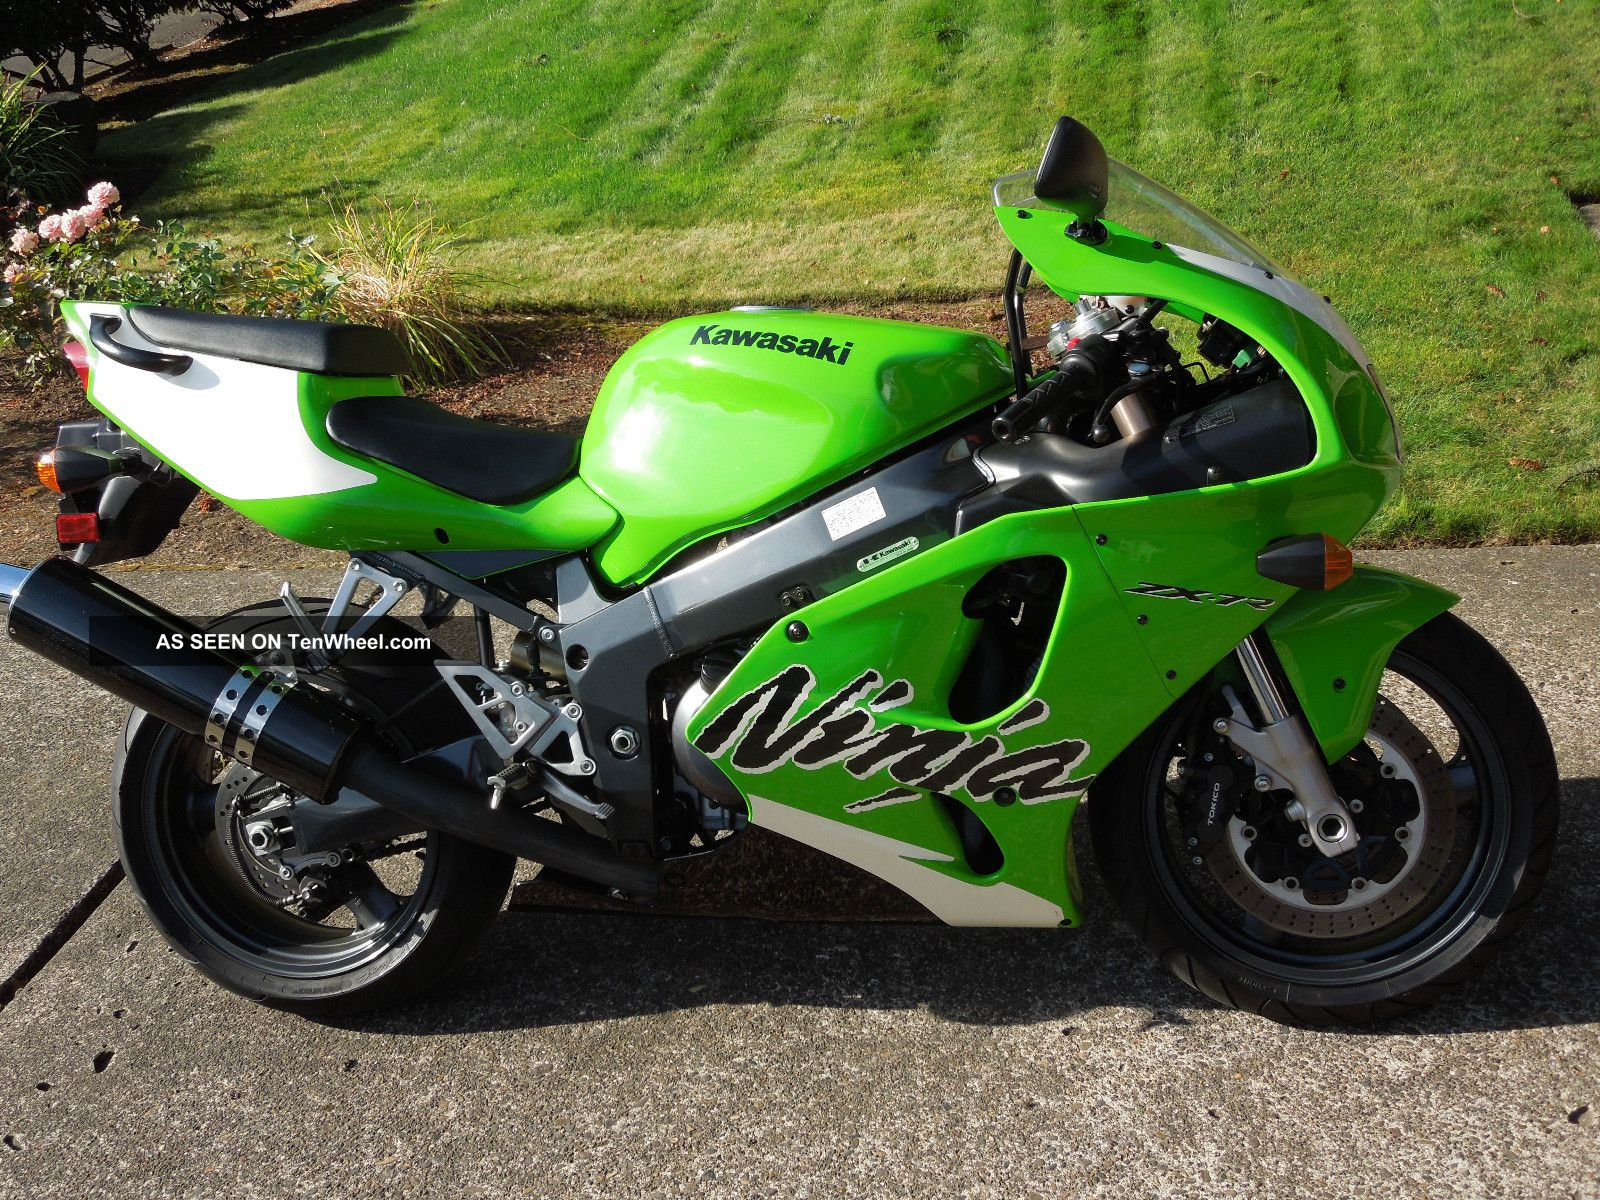 1999 Kawasaki Ninja ZX-7R: pics, specs and information